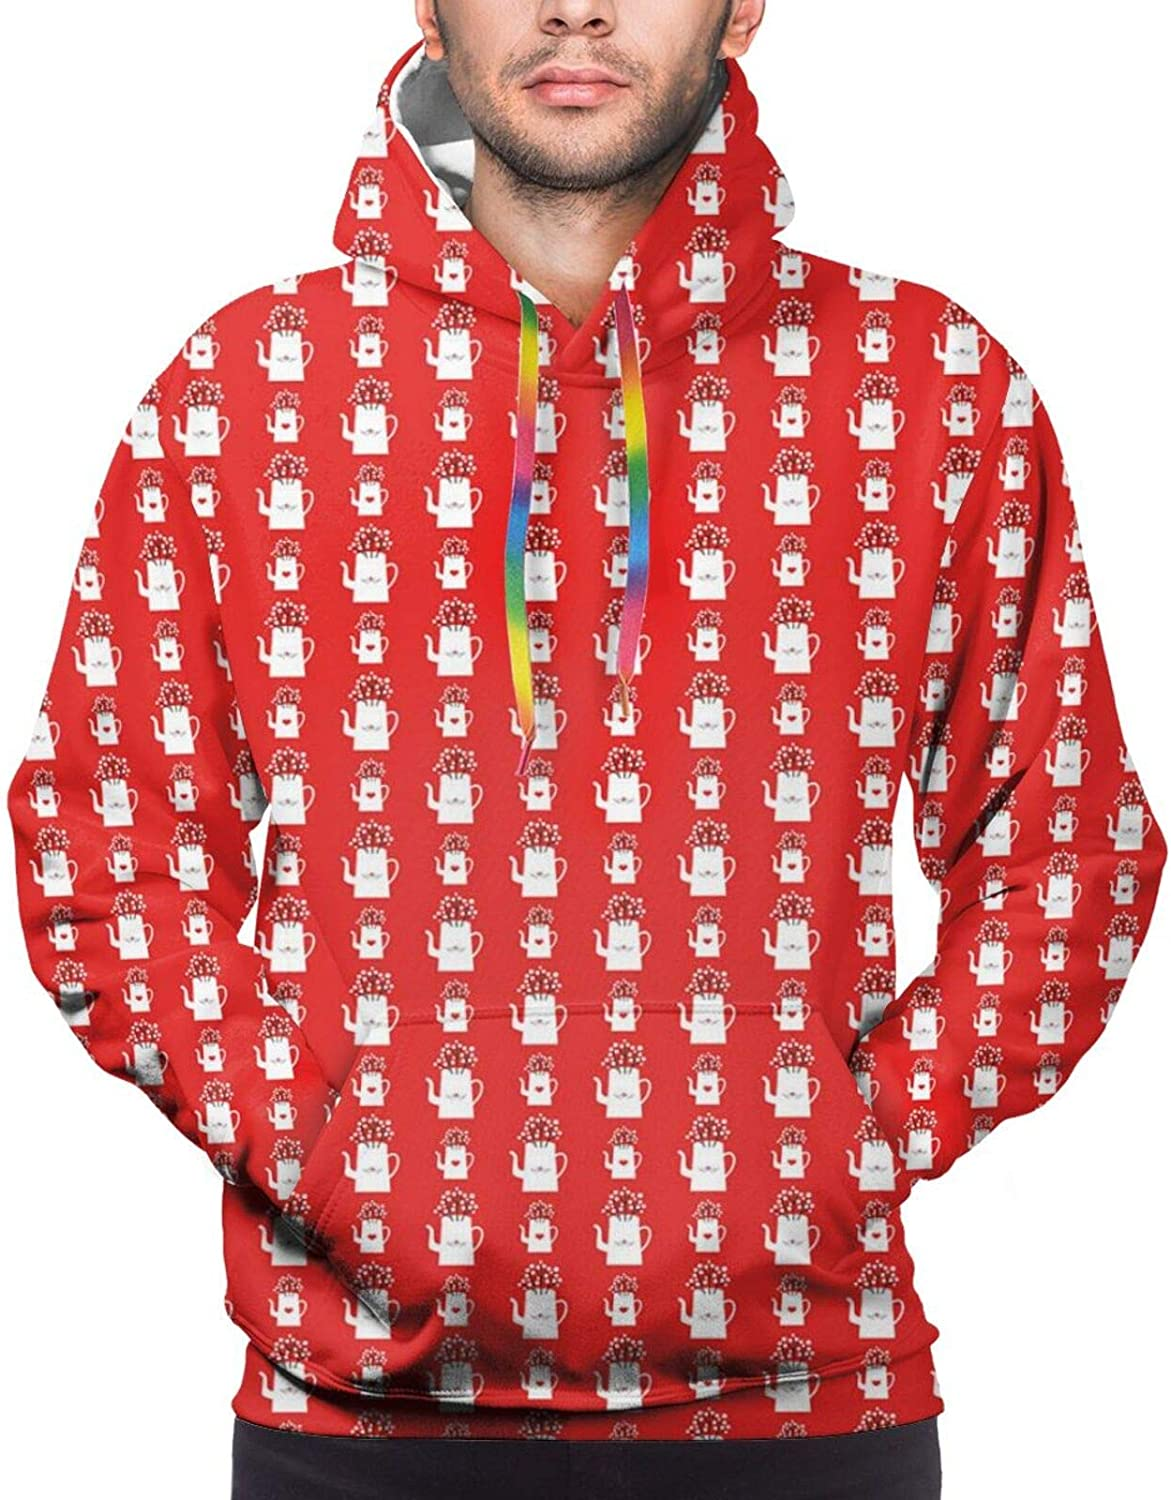 Men's Hoodies Sweatshirts,Love Themed Pattern with Birds and Hearts On Sweet Kettles